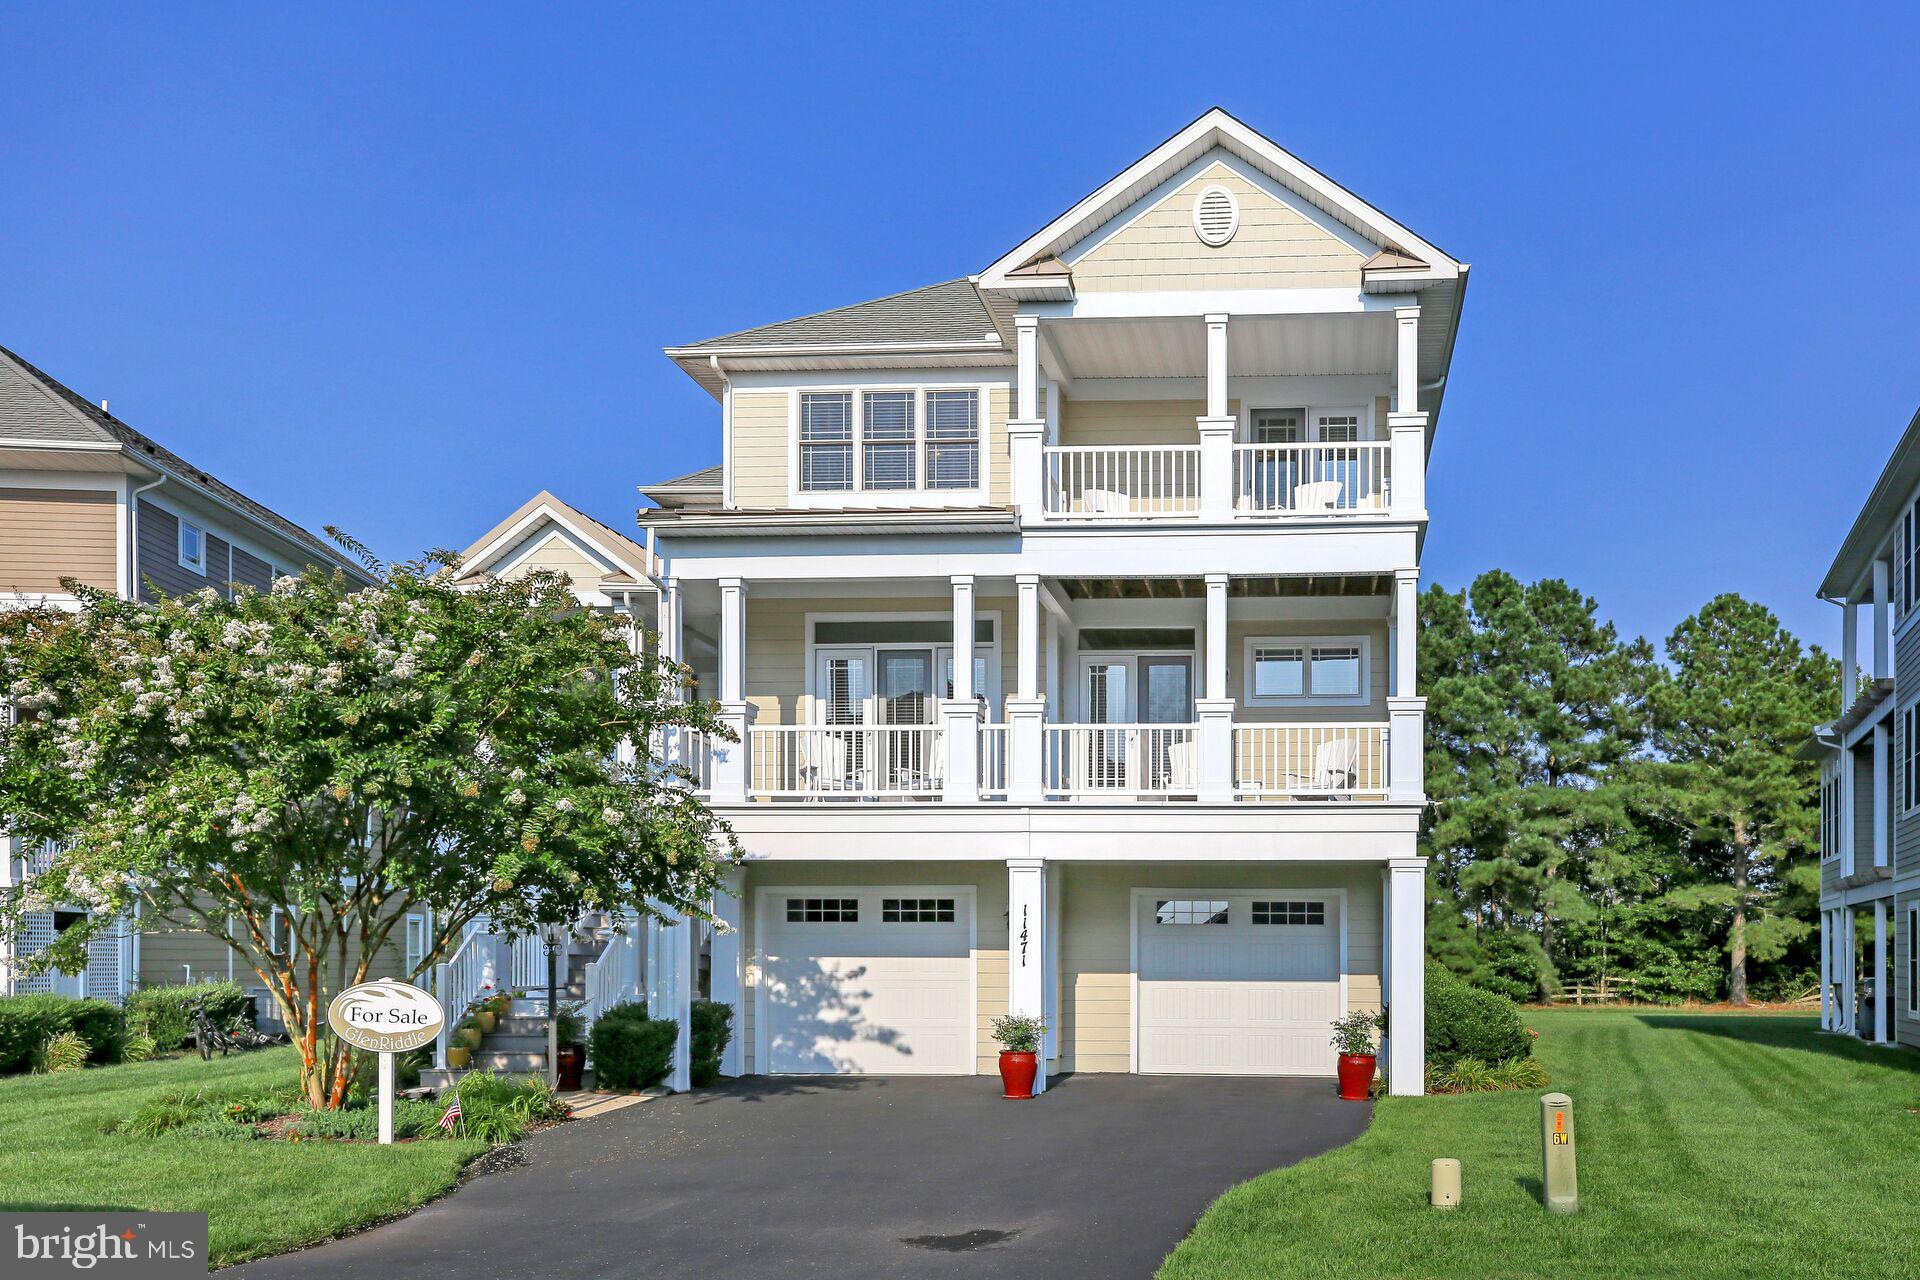 11471 MAID AT ARMS LANE, BERLIN, MD 21811